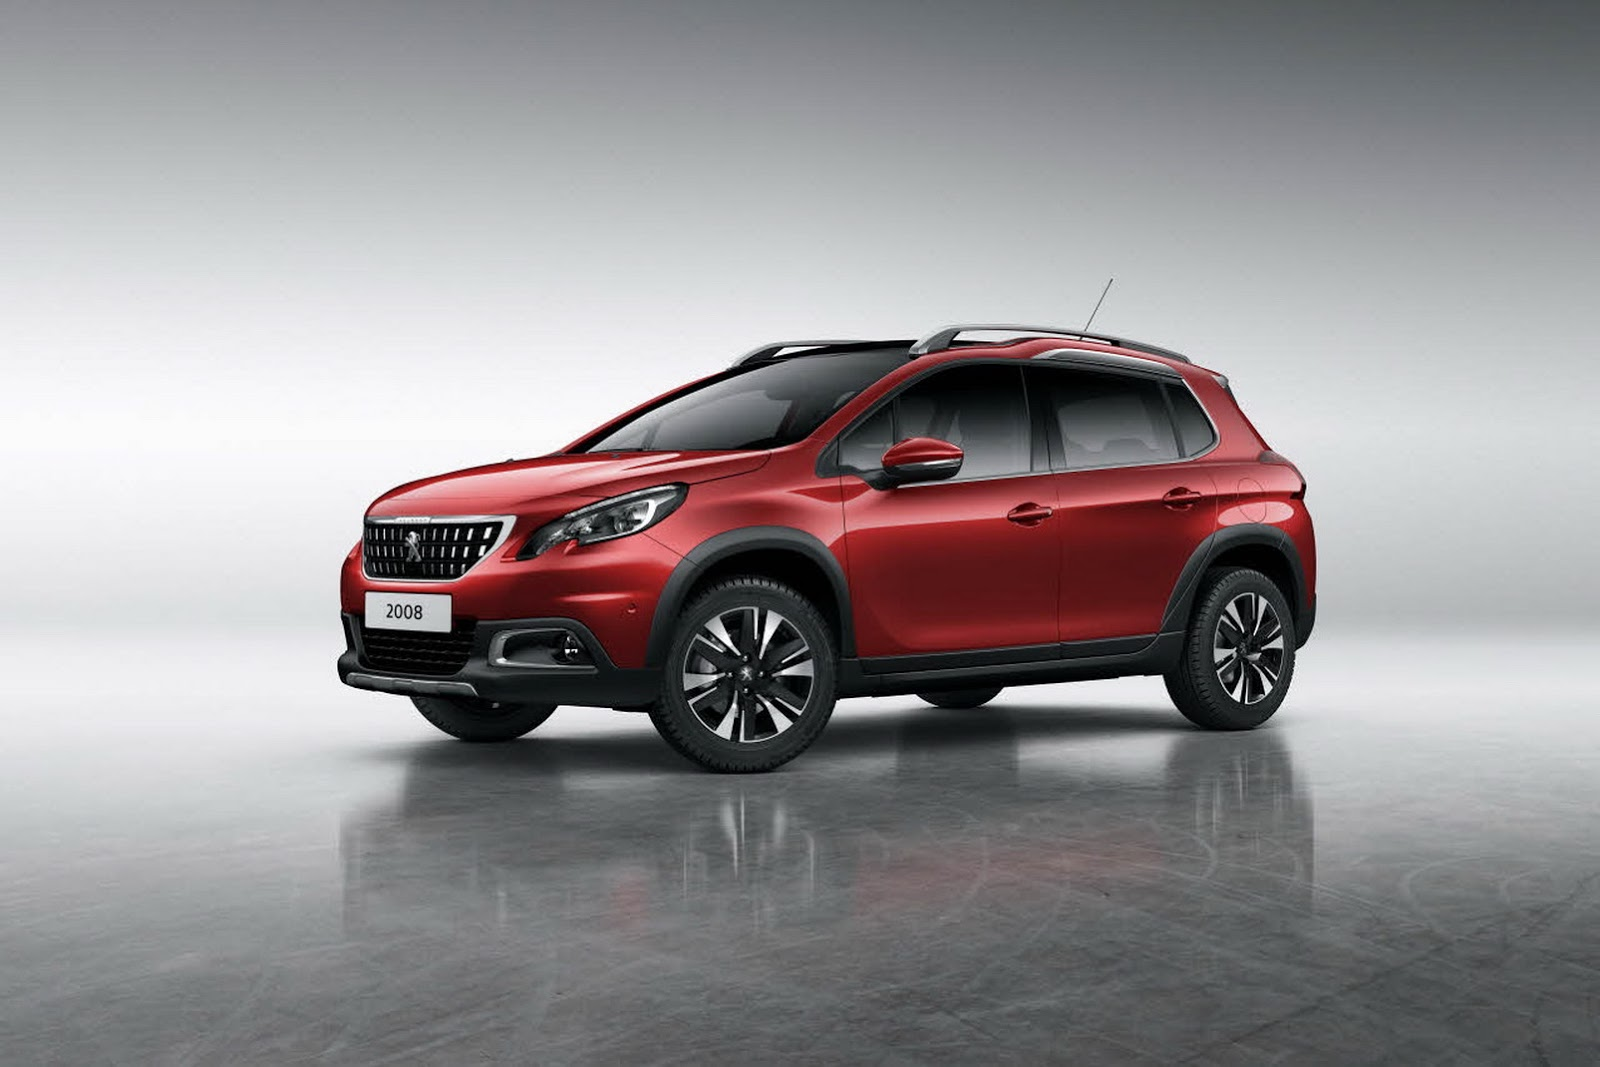 2016 peugeot 2008 facelift doesn t look half bad autoevolution. Black Bedroom Furniture Sets. Home Design Ideas